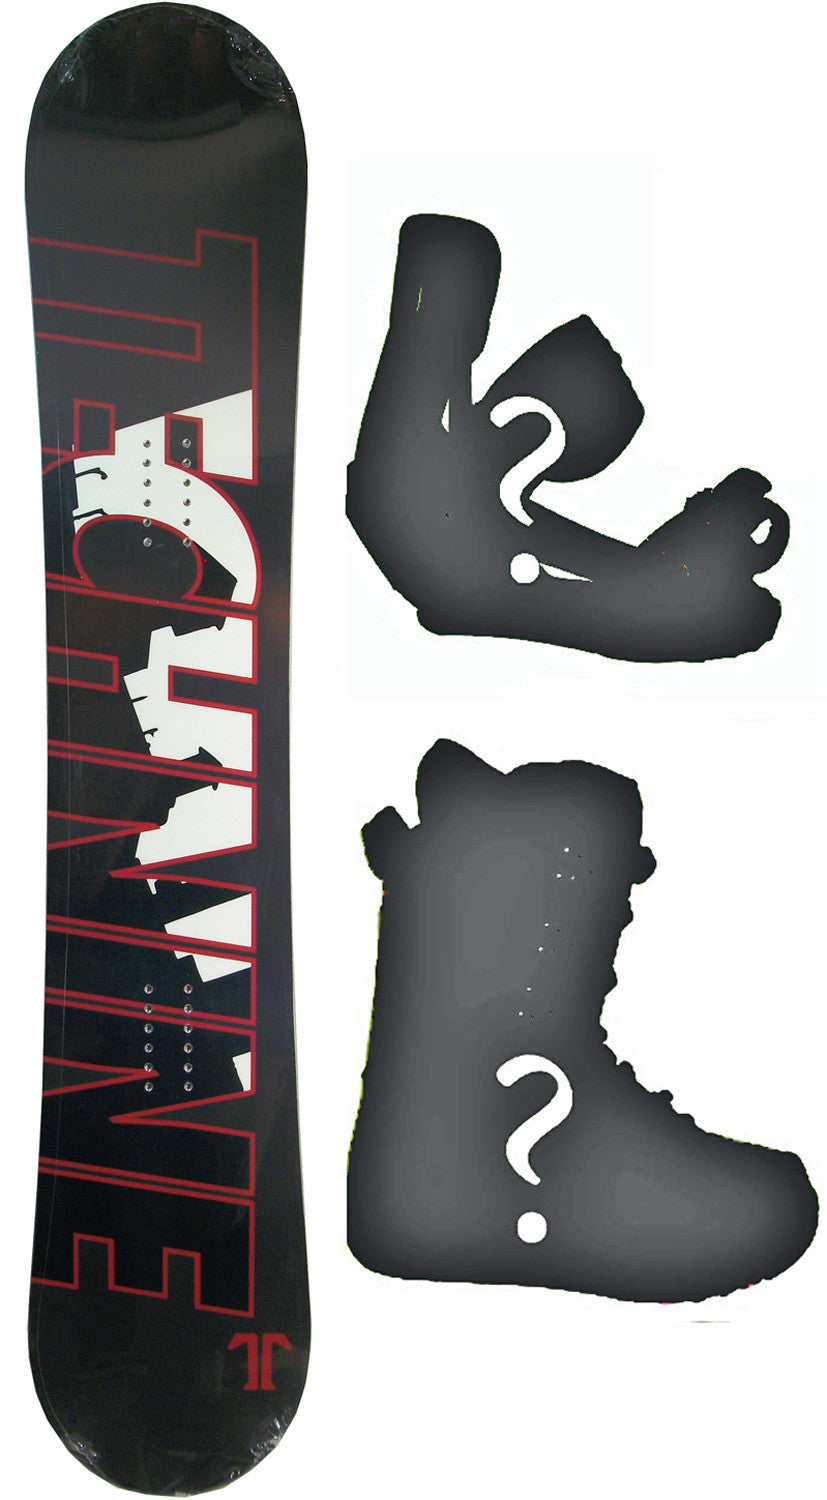 153cm  Technine T-Money Rocker Snowboard, Build a Package with Boots and Bindings